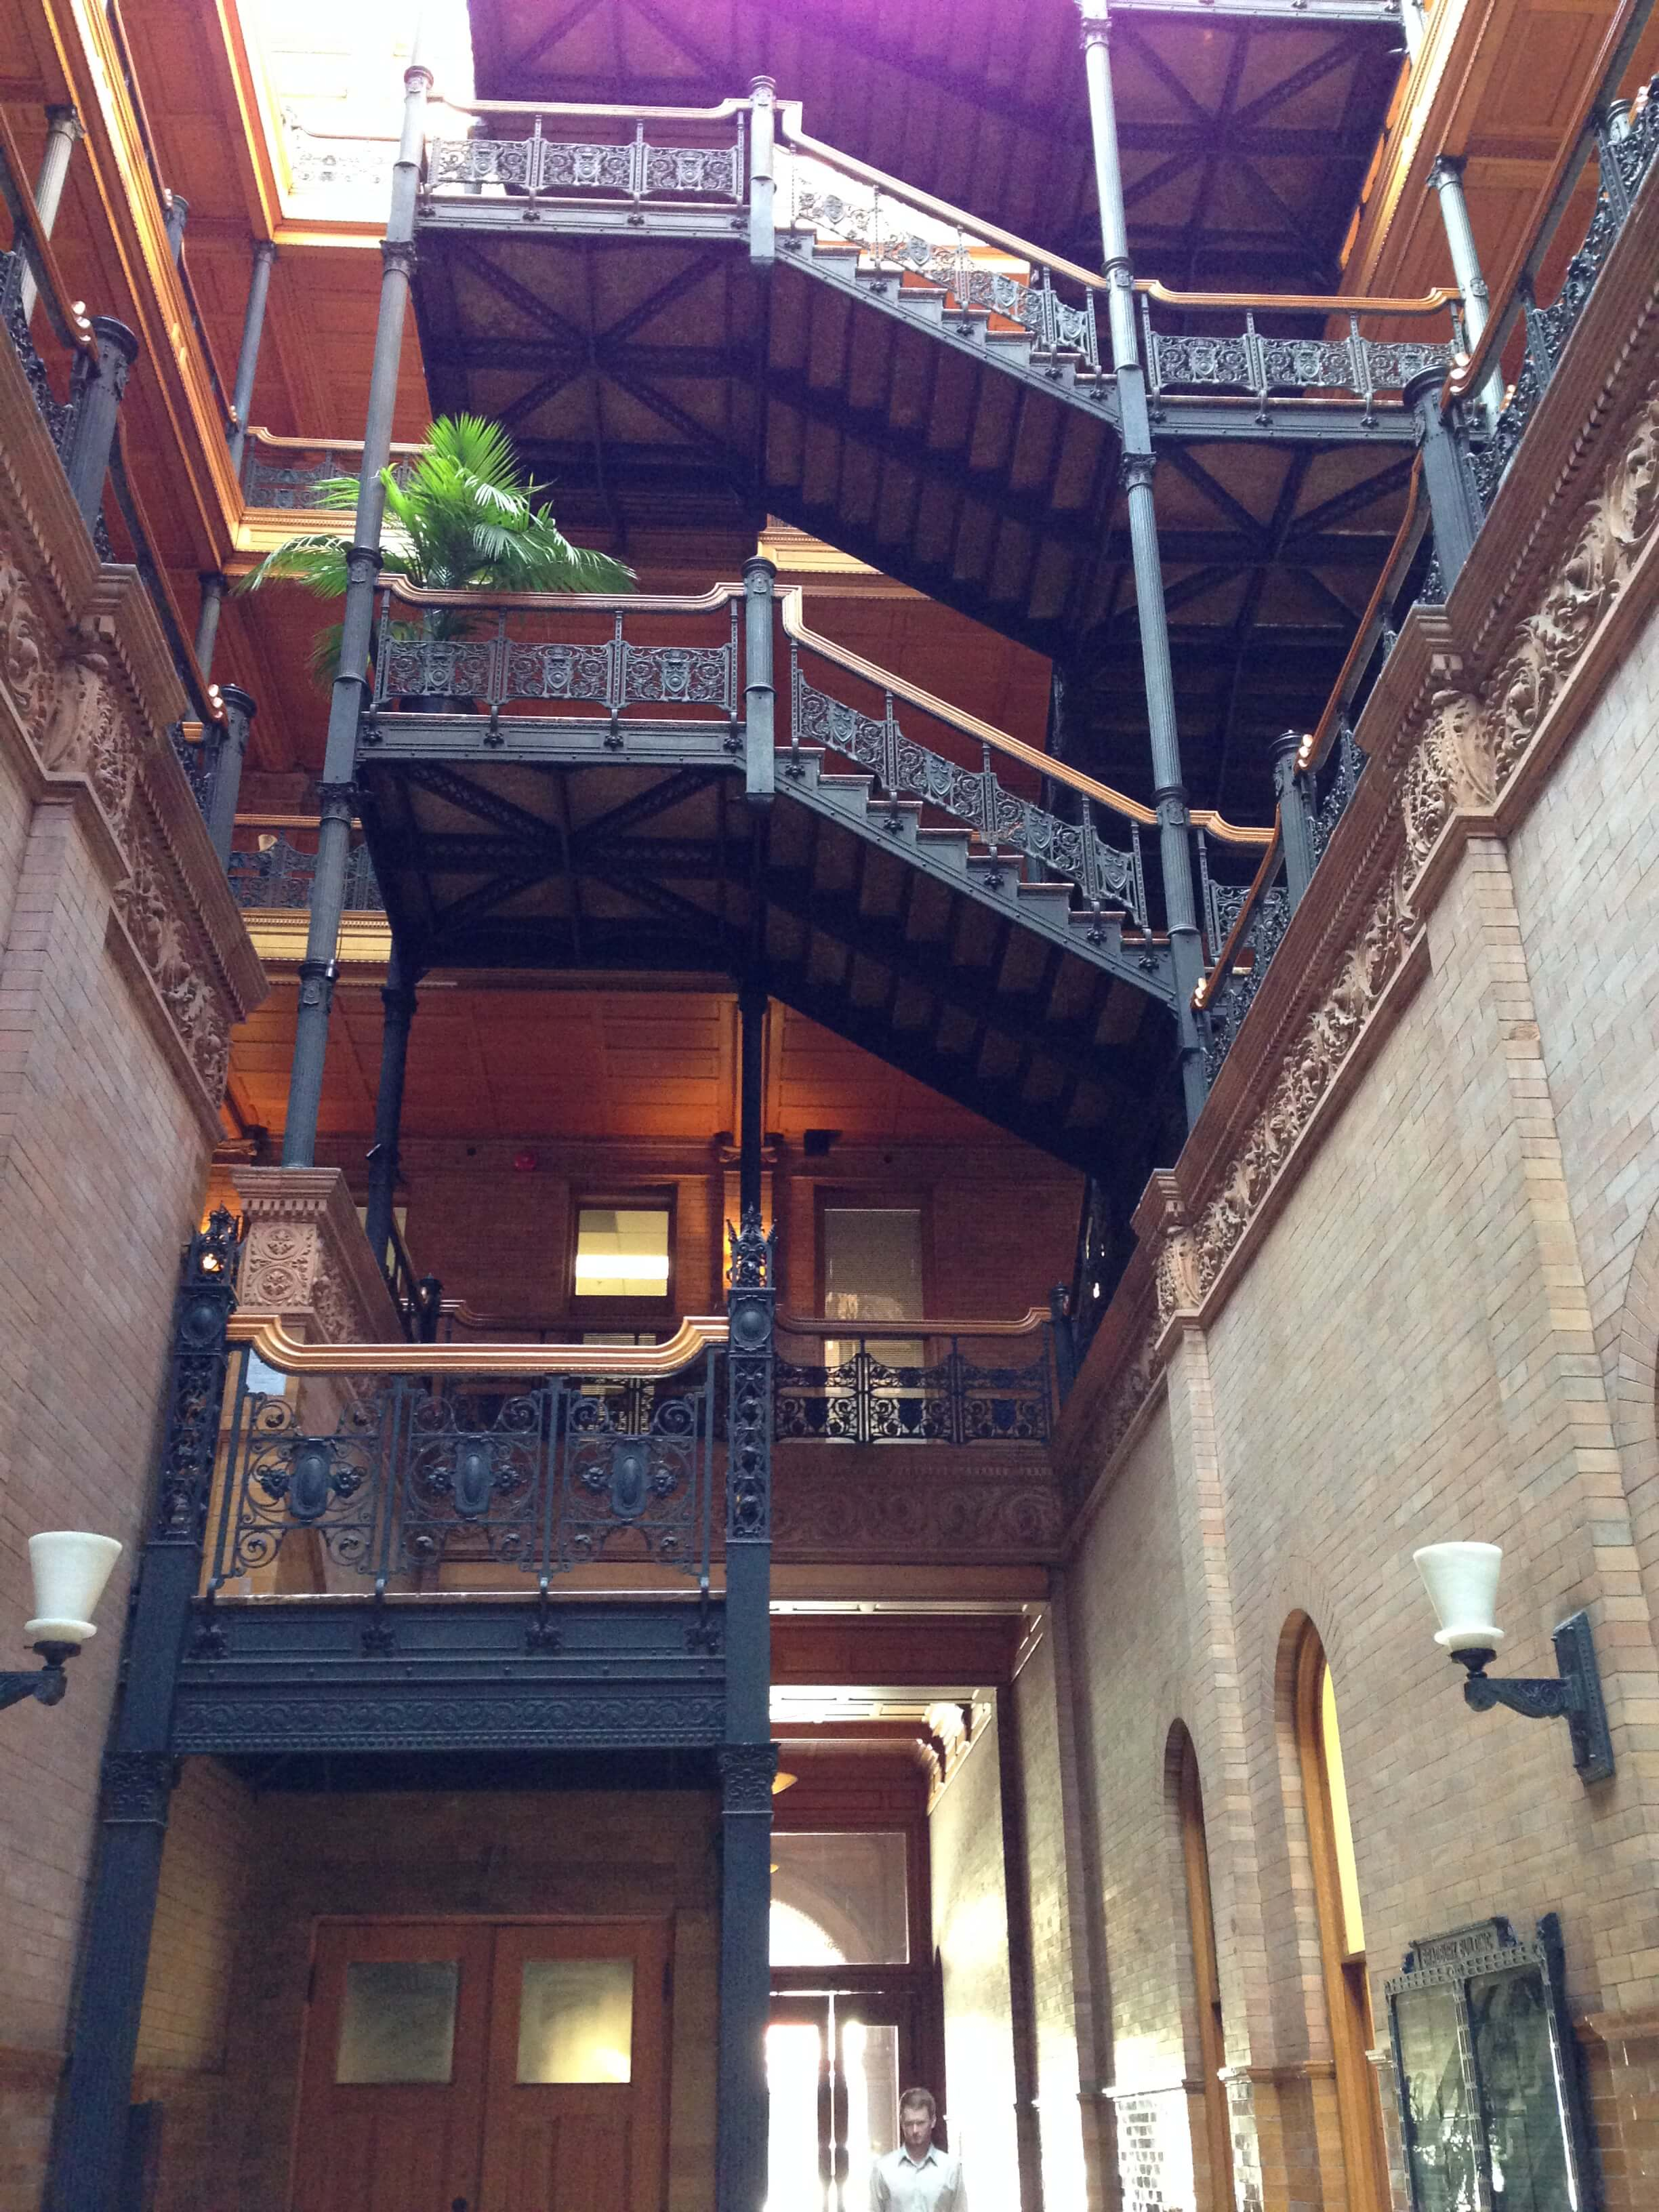 Lobby/Atrium of the Bradbury Building